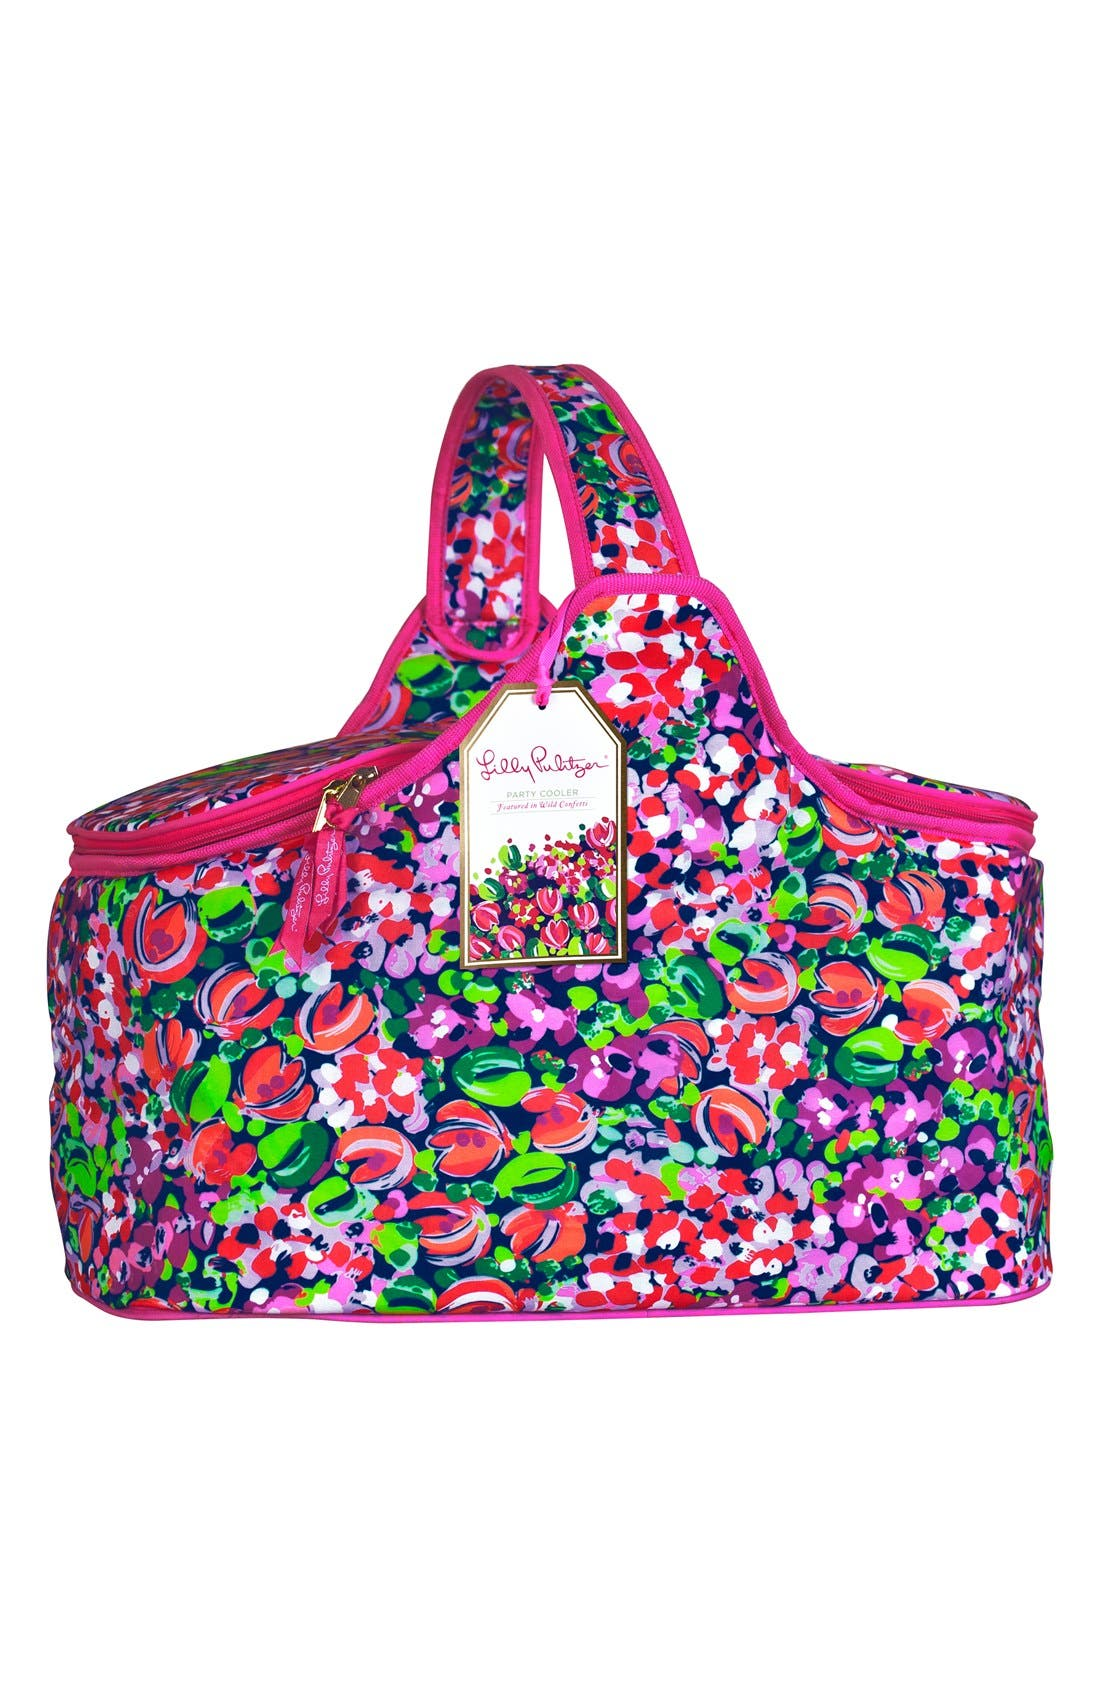 Main Image - Lilly Pulitzer® Insulated Party Cooler